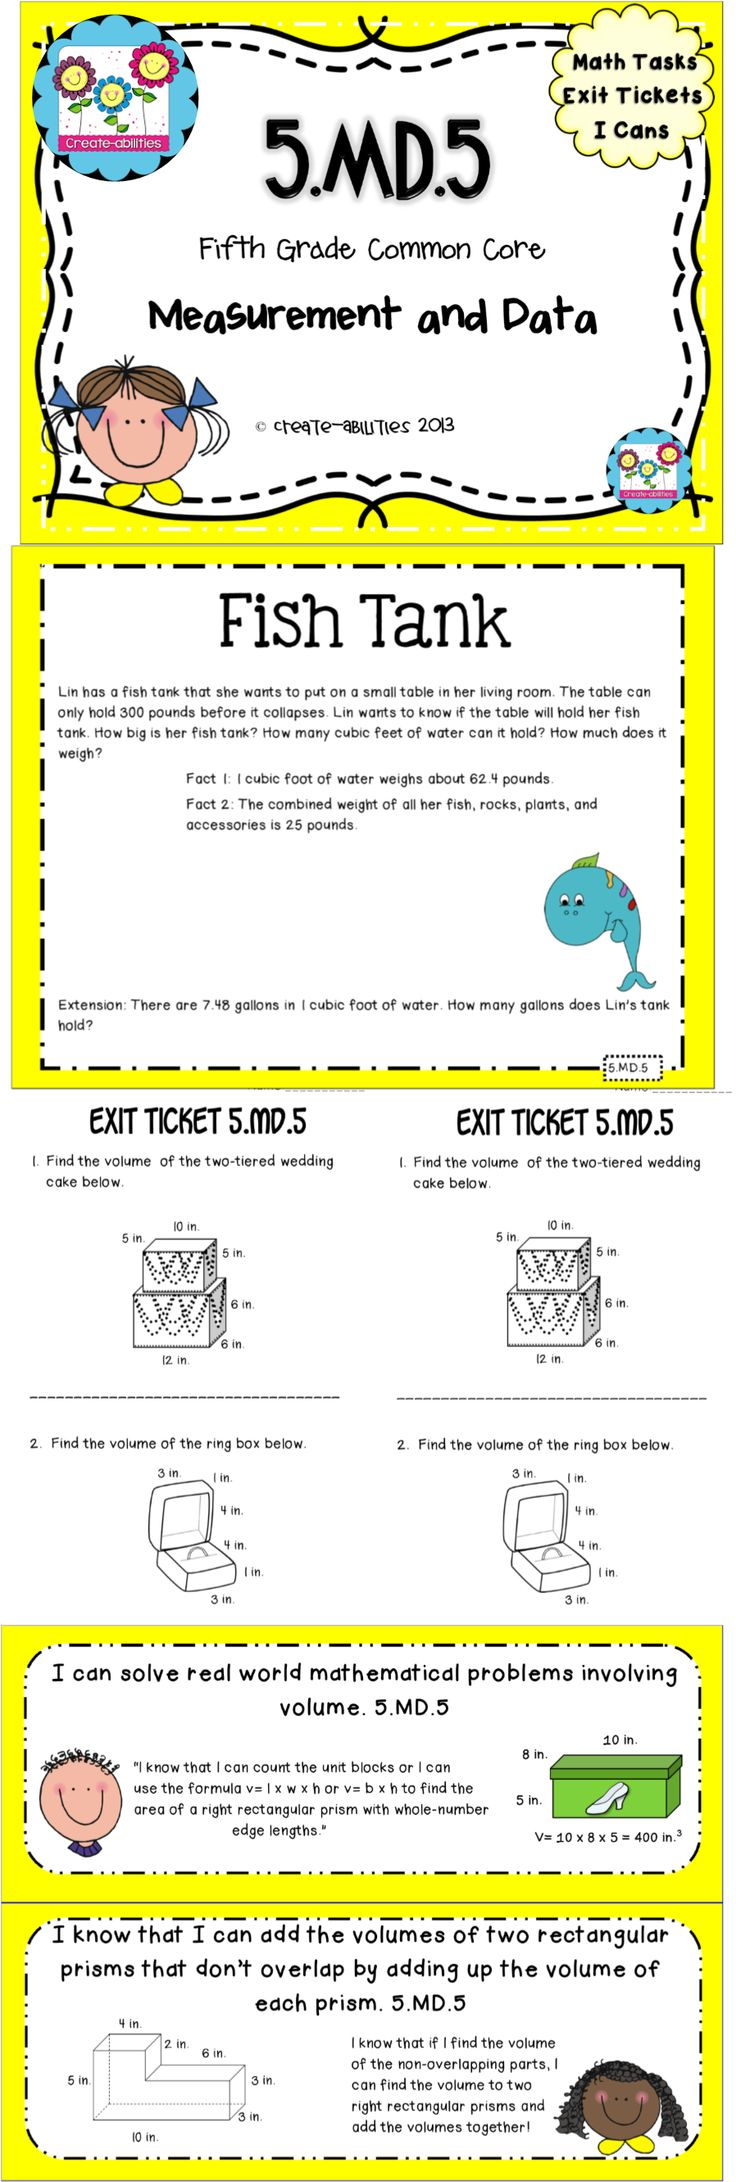 Volume worksheets grade 5 common core